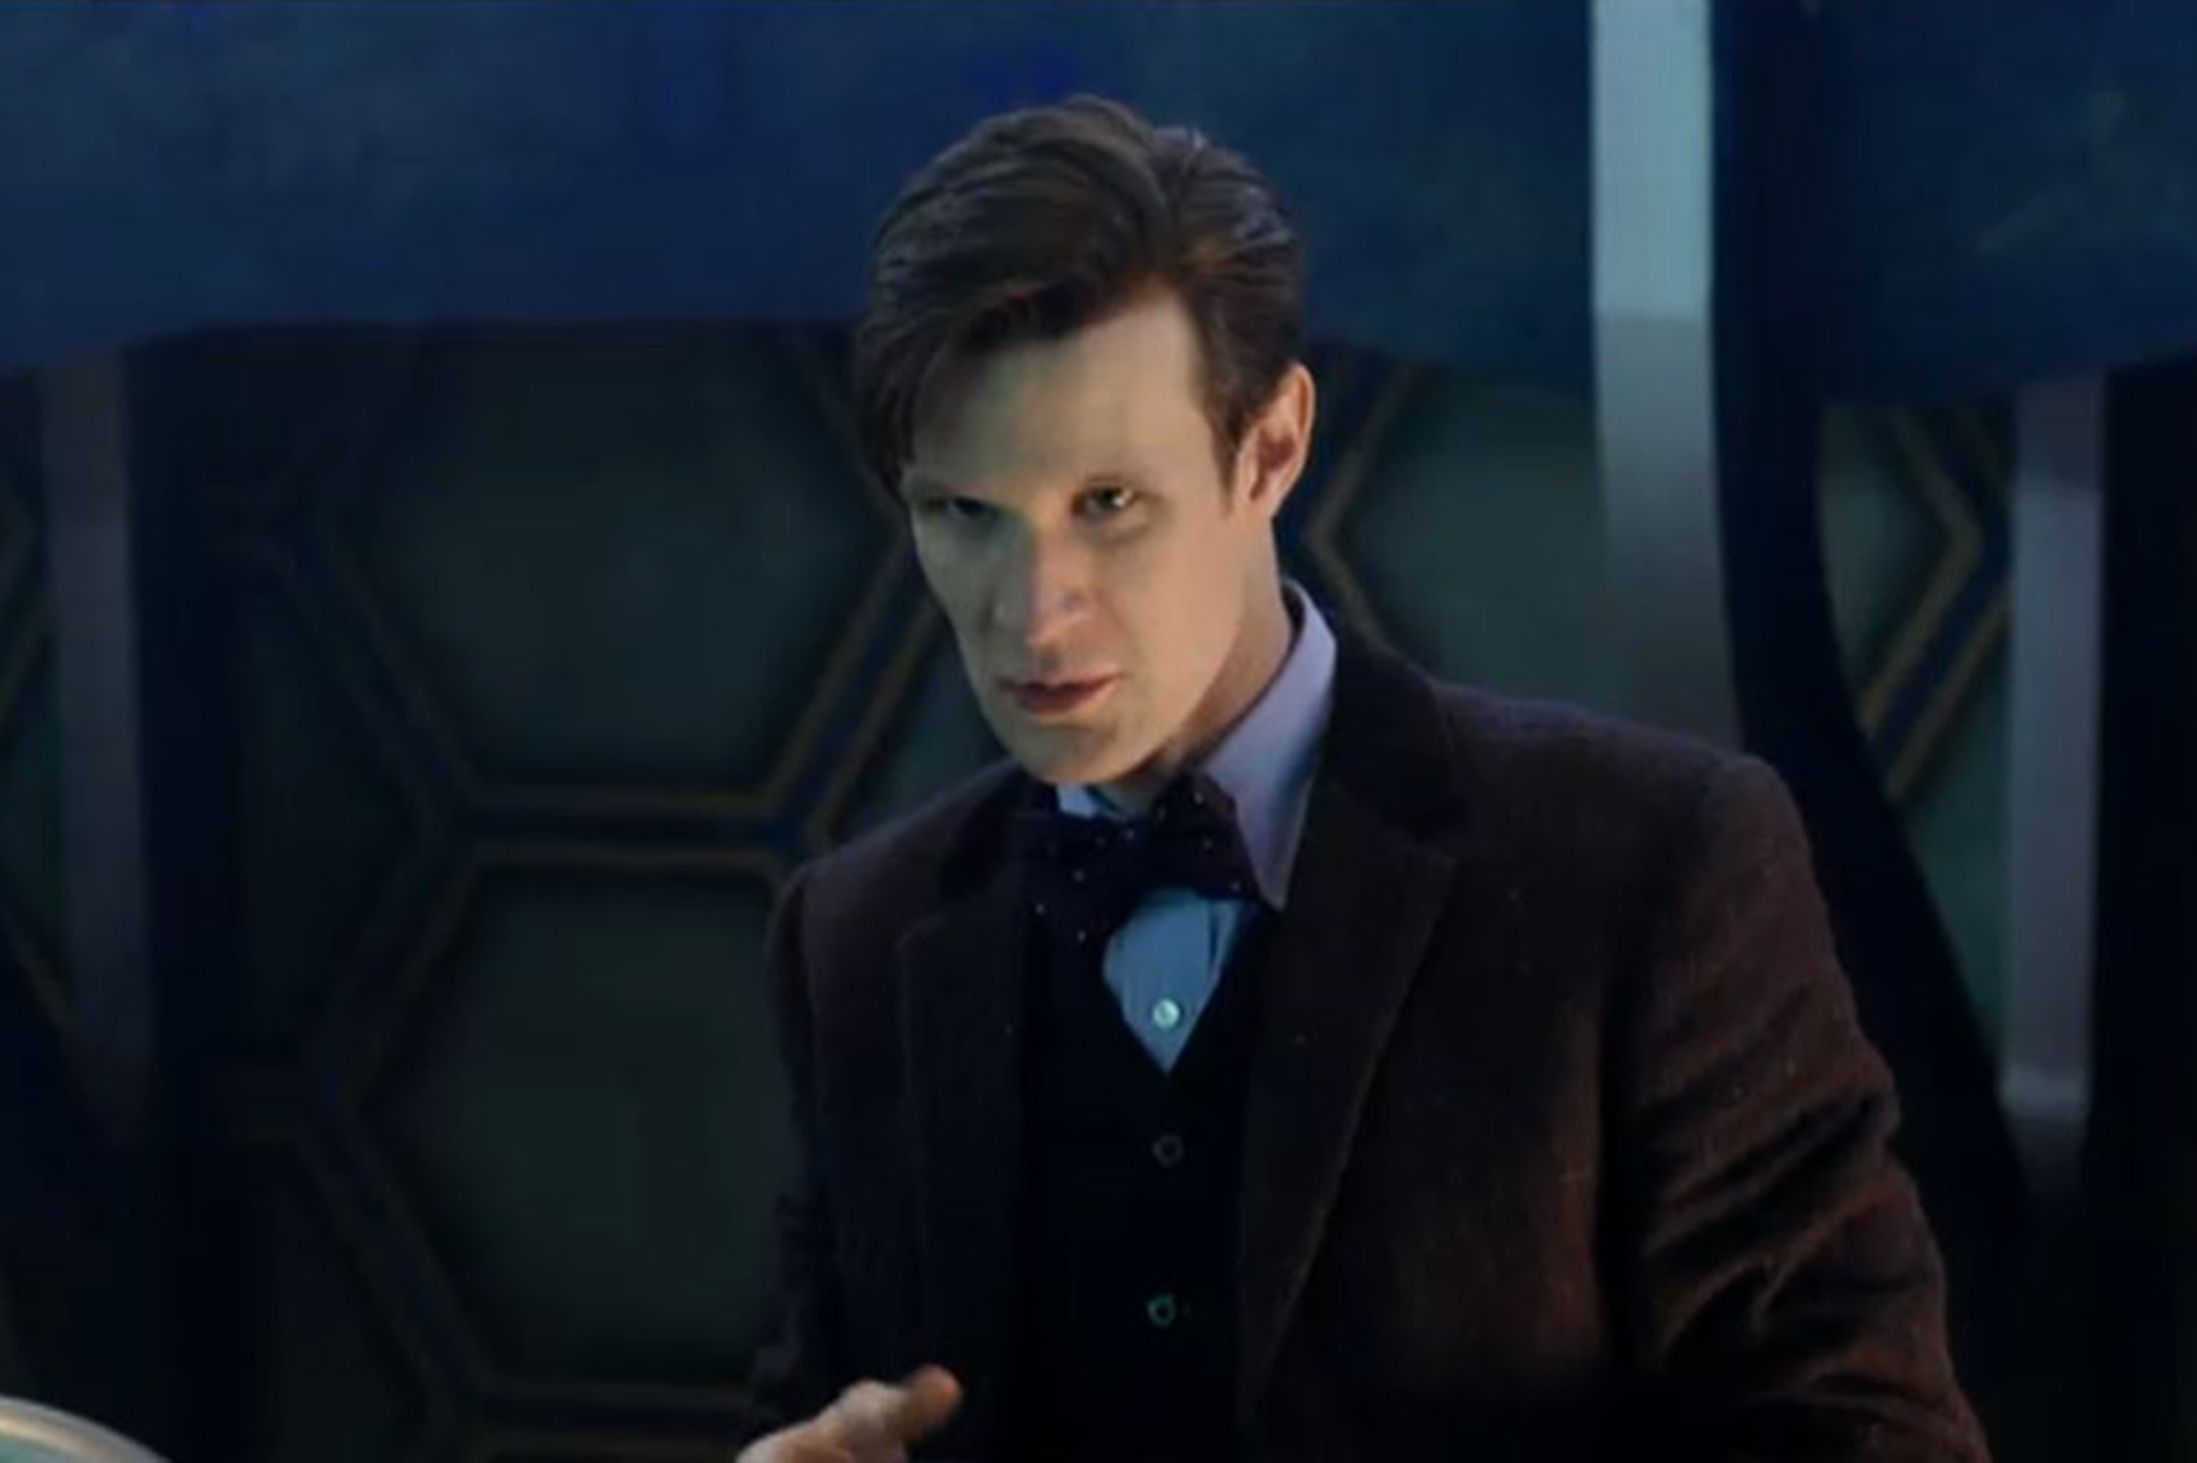 doctor who eleventh doctor matt smith wallpaper hd tv - 1200×675